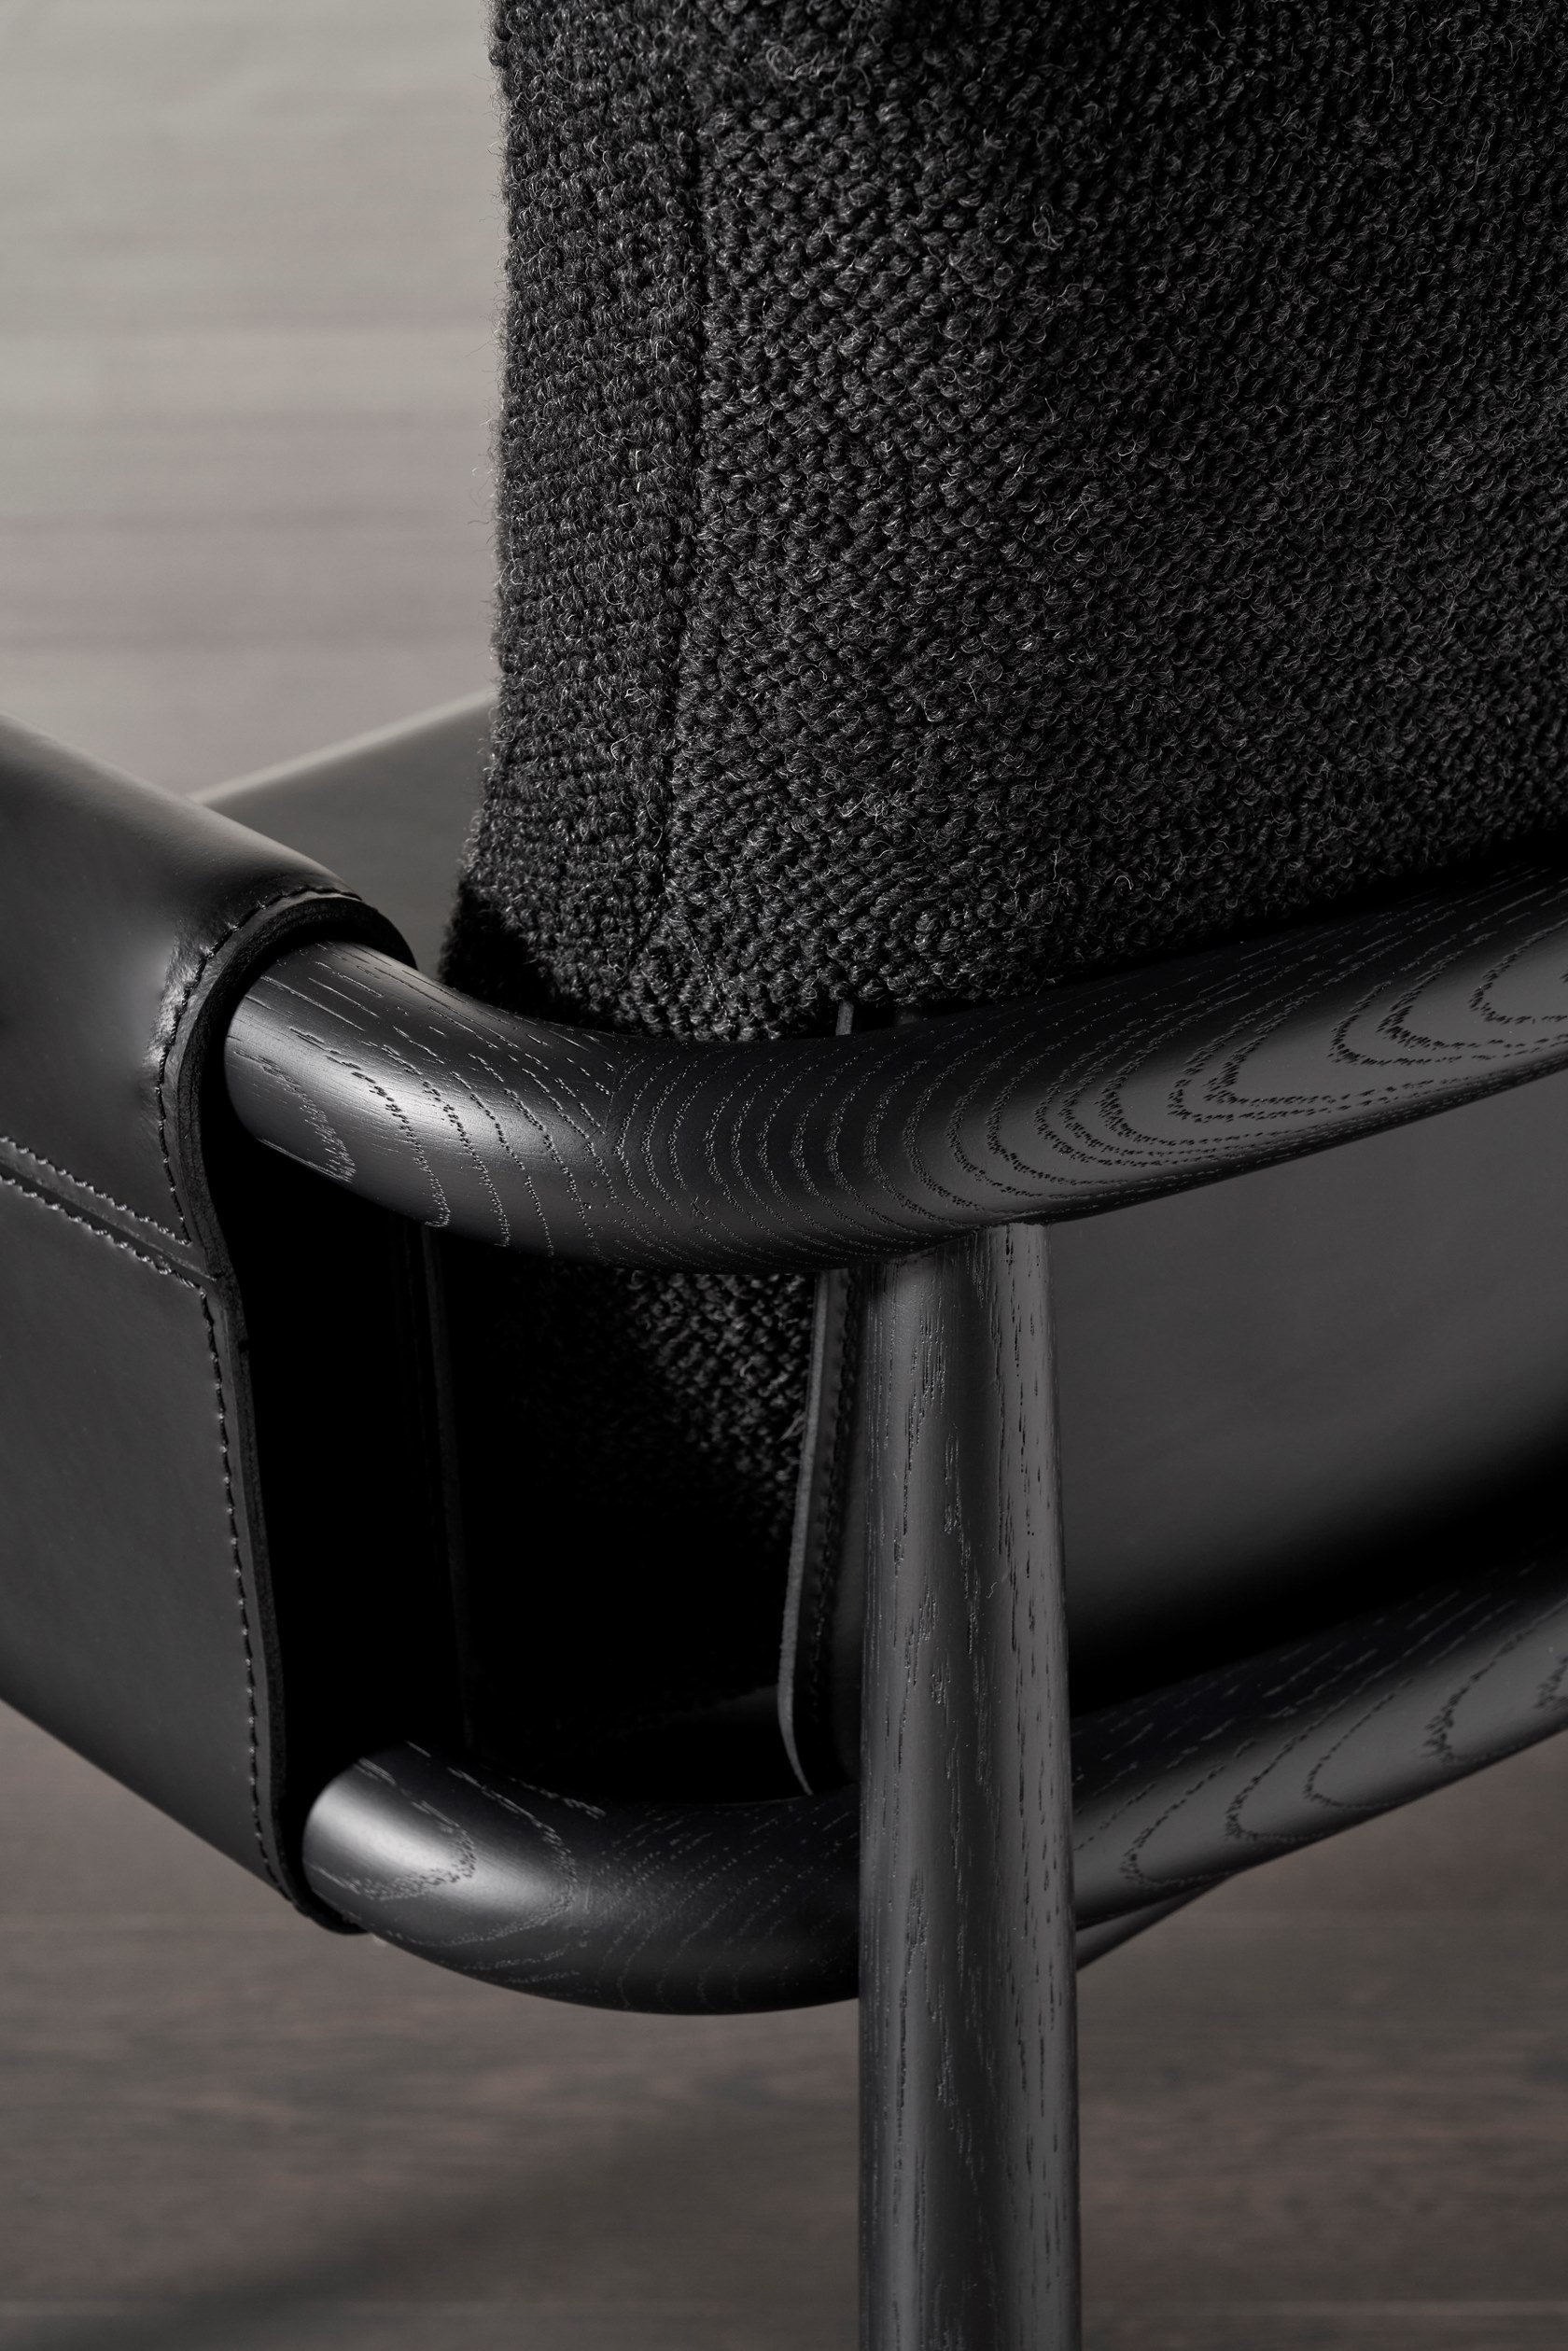 """Teresina Imbottita Armchair - Two souls enclosed in the same body: Teresa and Teresina are an armchair and a chair marked by essential lines that take shape and structure thanks to the warmth and solidity of oak wood, skilfully crafted. Both comfort and aesthetics differ in the available versions, """"soft"""" or """"kuoio"""".  The first one is softer and more welcoming, with padded back and seat covered with the textiles and leathers in collection. A special seam with double ribs reveals here the tailoring approach of Meridiani.  The second version takes on a more gritty and decided look thanks to a saddle-leather body that defines back, armrests and seat: the particular saddle leather shape bound up to the oak frame draws a suspended seat that emphasizes its rigor.  This is how this collection recalls different suggestions depending on the finish and color chosen, creating versatile seats able to dress up and interpret every living context. 